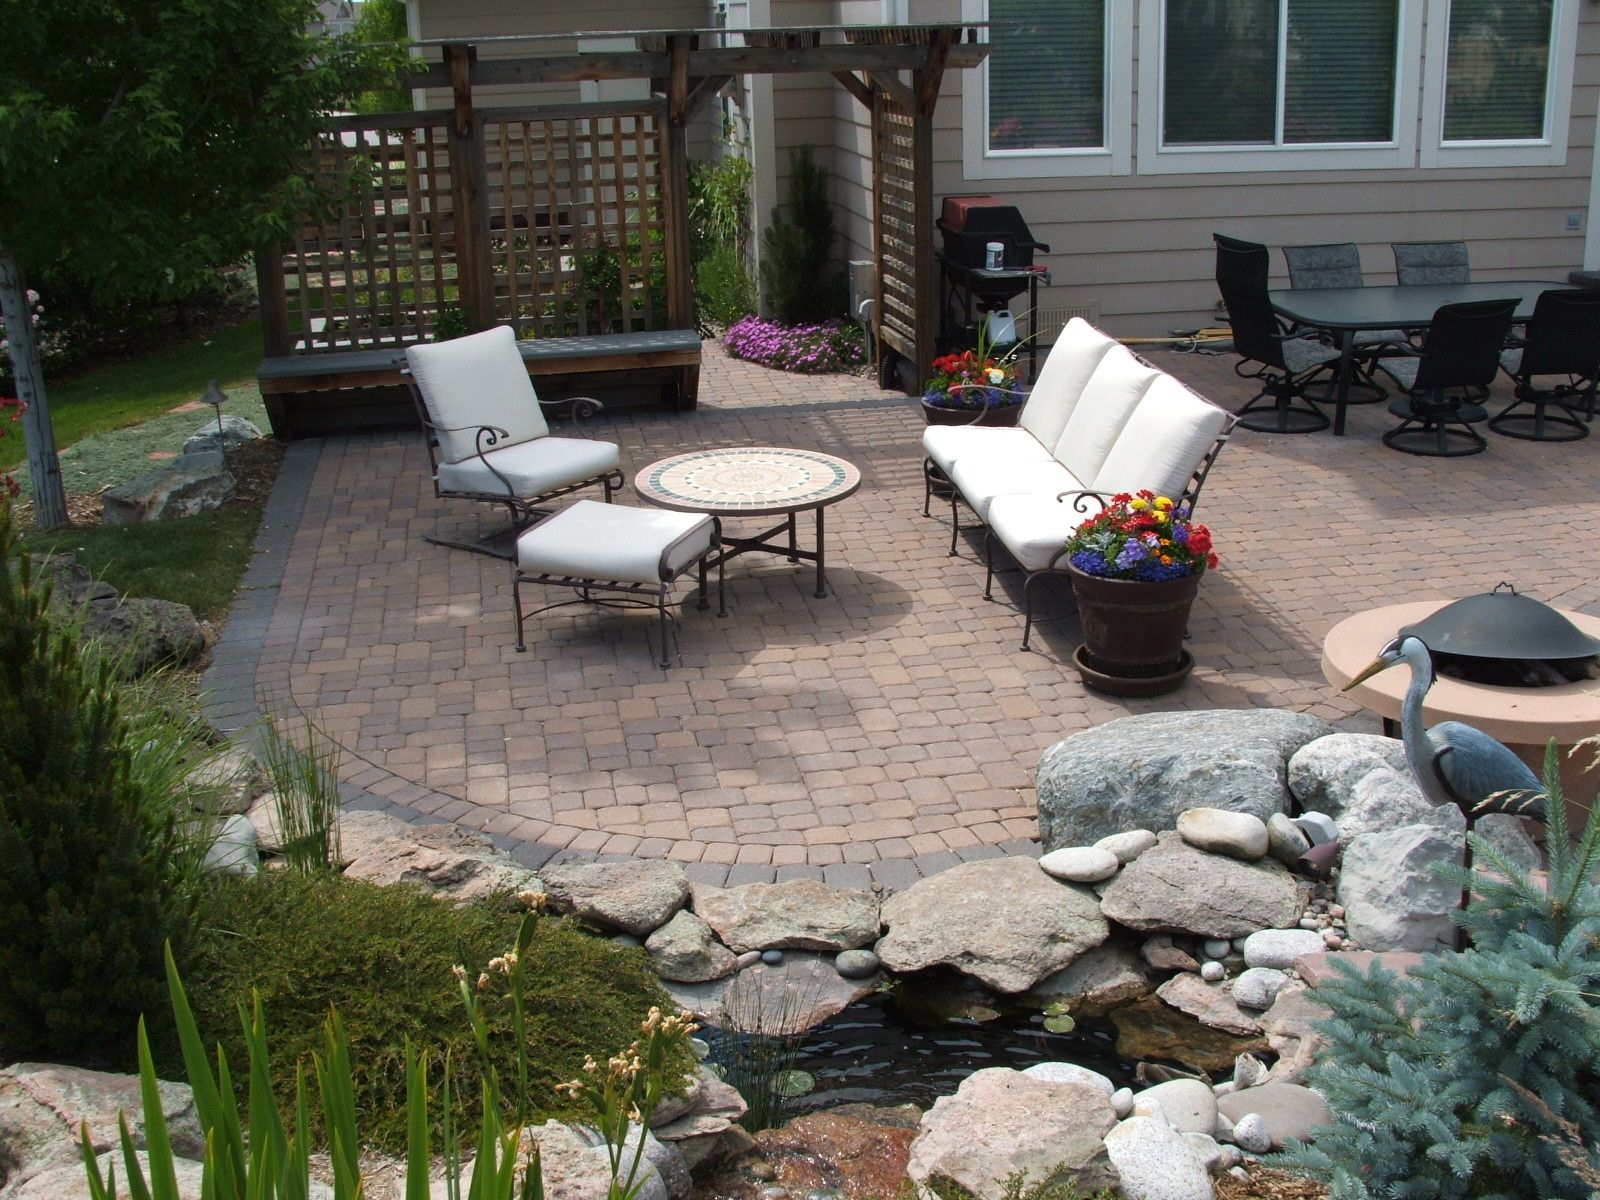 Paving Designs For Backyard Style Patio Ideas With Pavers  Paver Patios  Patio  Pinterest .